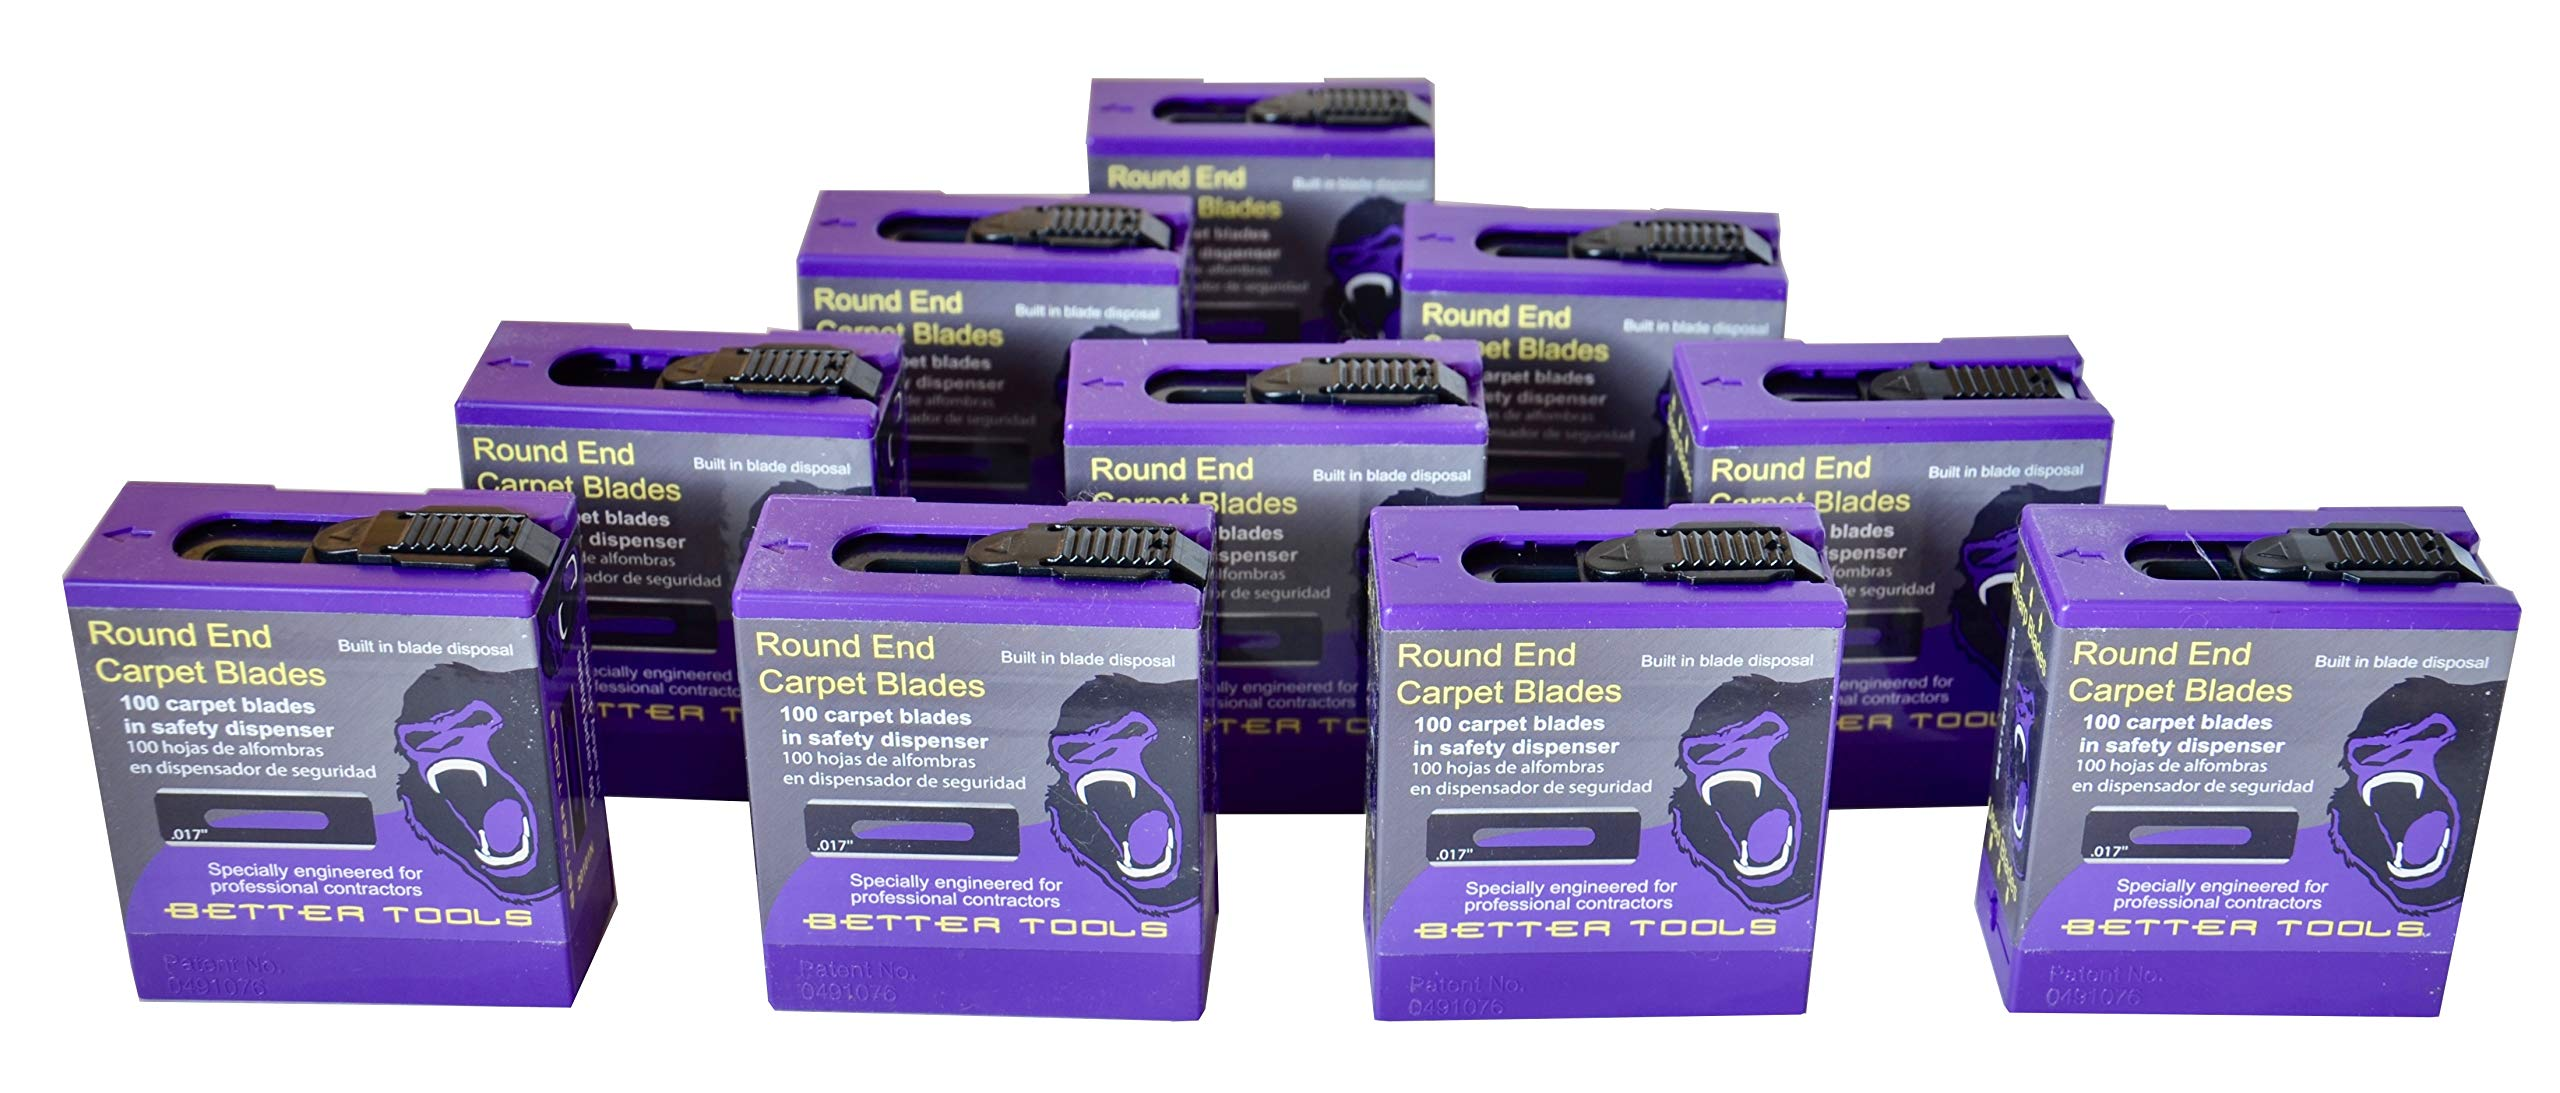 Carpet Blades - Round End Case (case of 10 Dispensers - 100 Blades/dispense) (10) by Better Tools